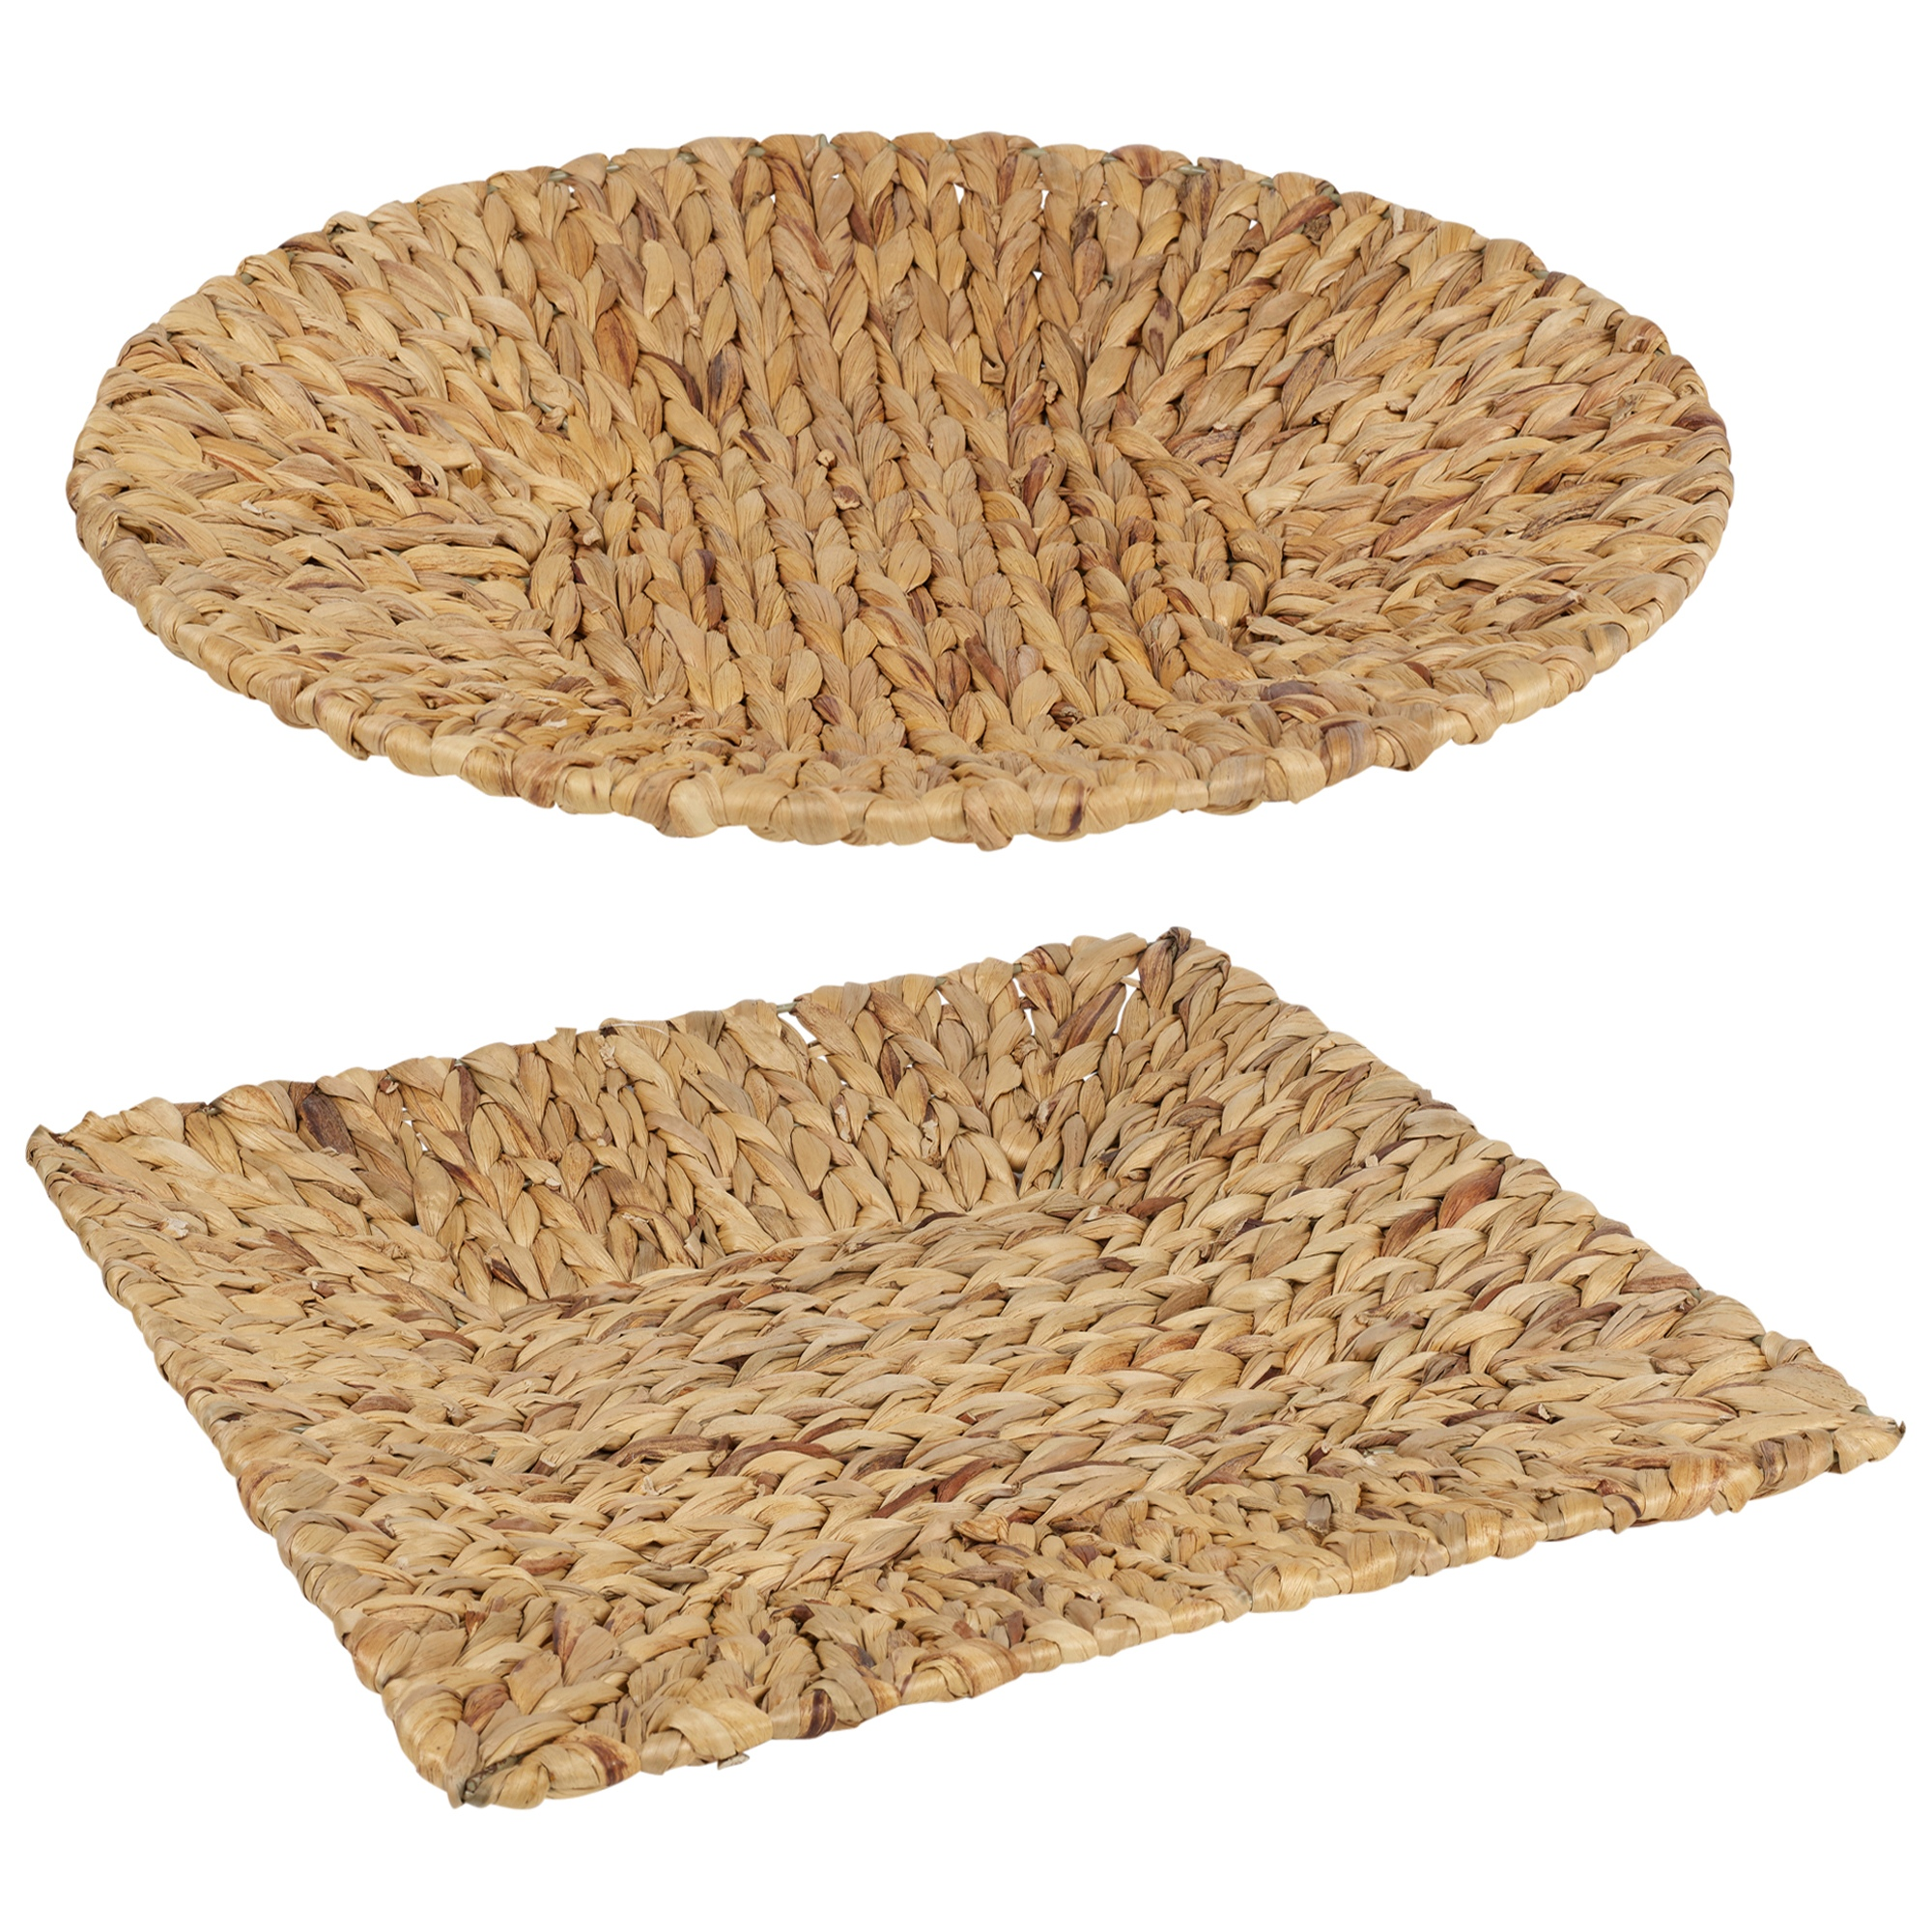 Natural Organic Handmade Water Hyacinth Woven Trivet Hot Food Tray Square Round Ebay